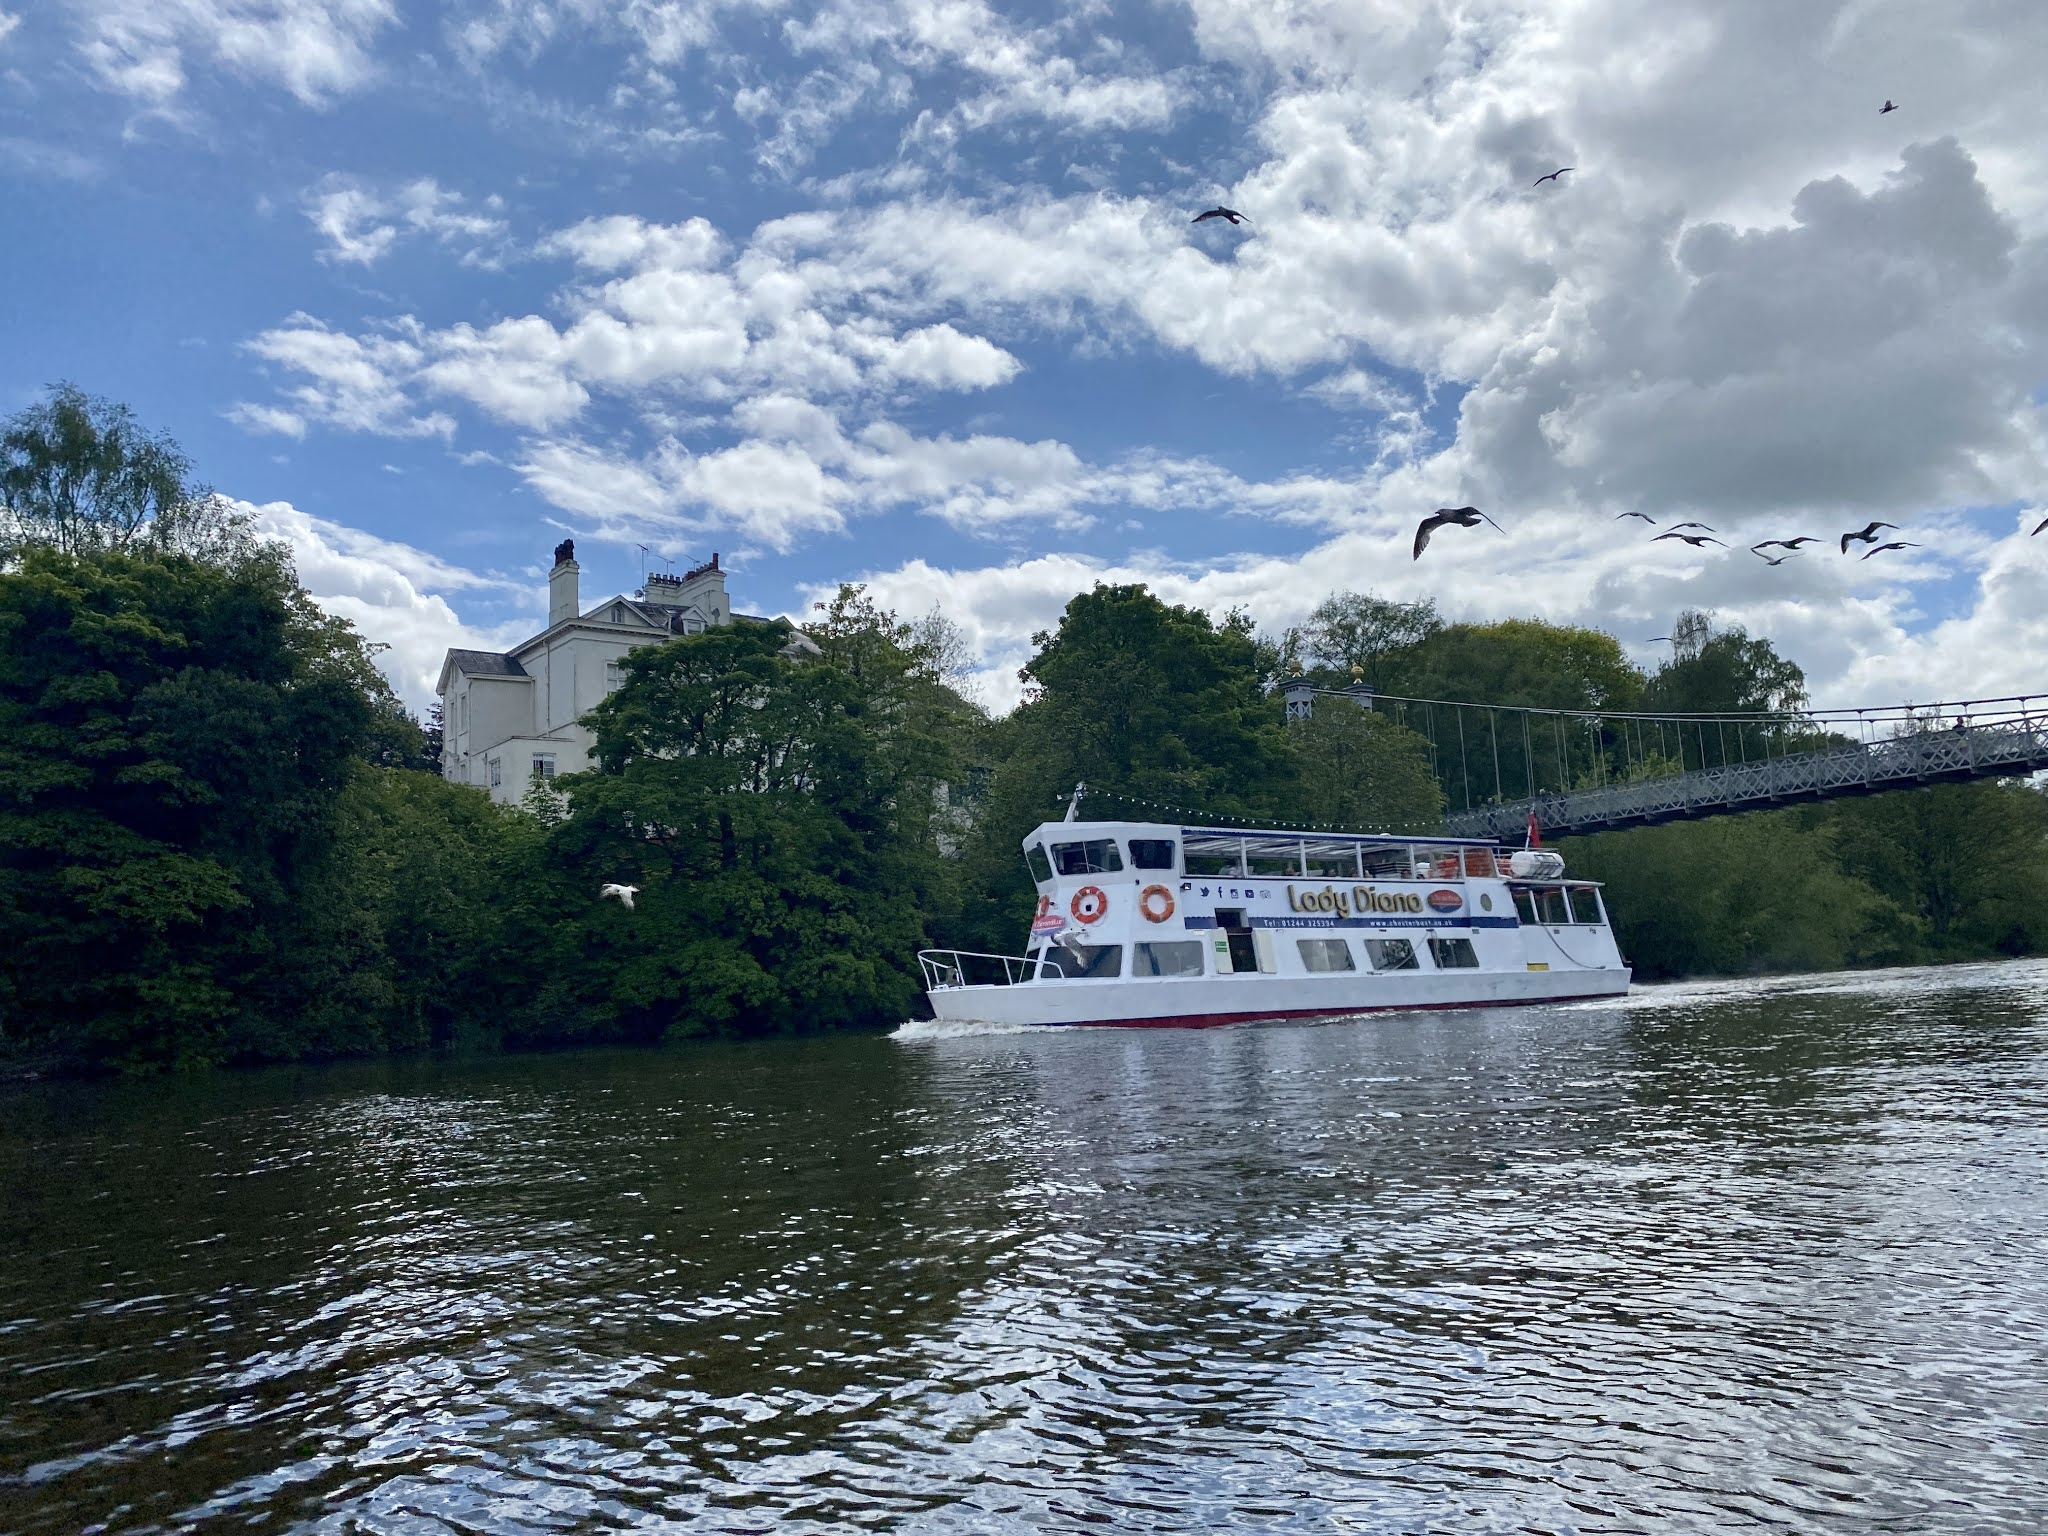 Cruise on the River Dee